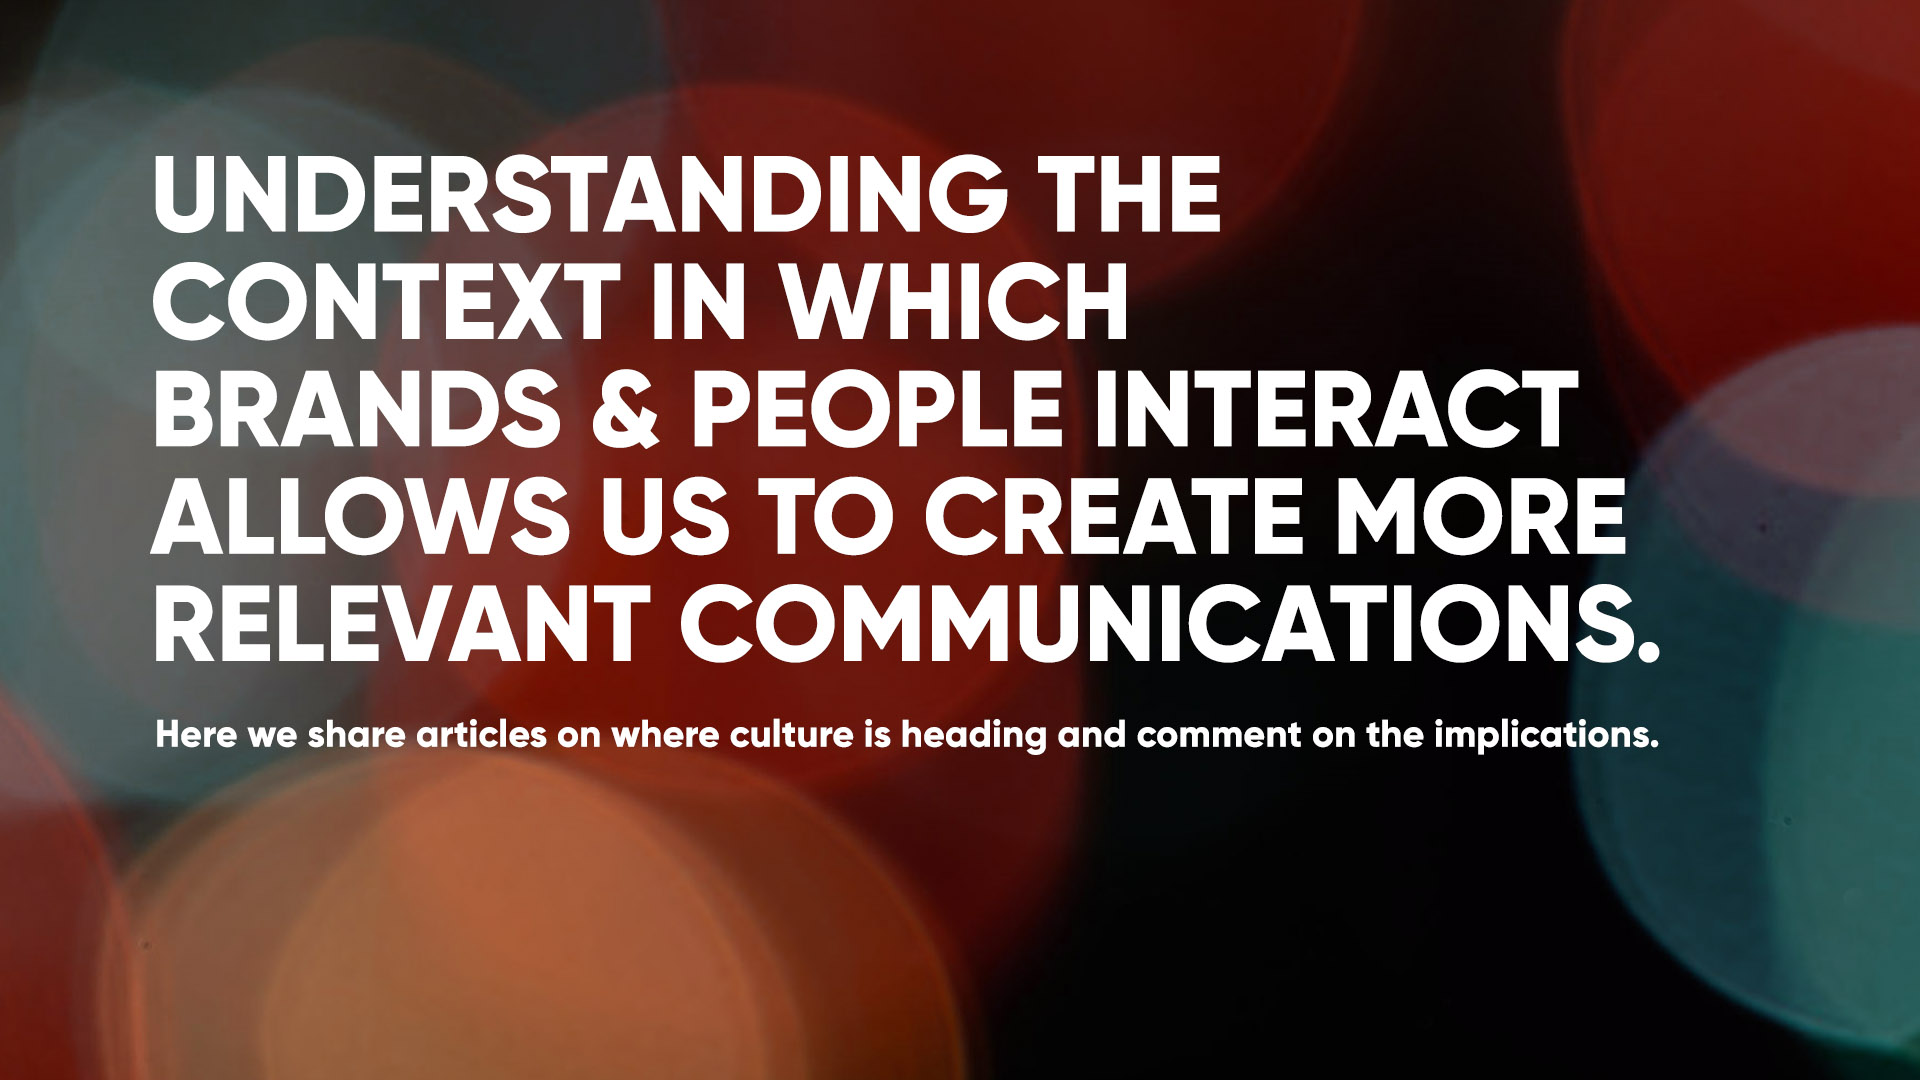 Understanding the context in which brands & people interact allows us to create more relevant communications